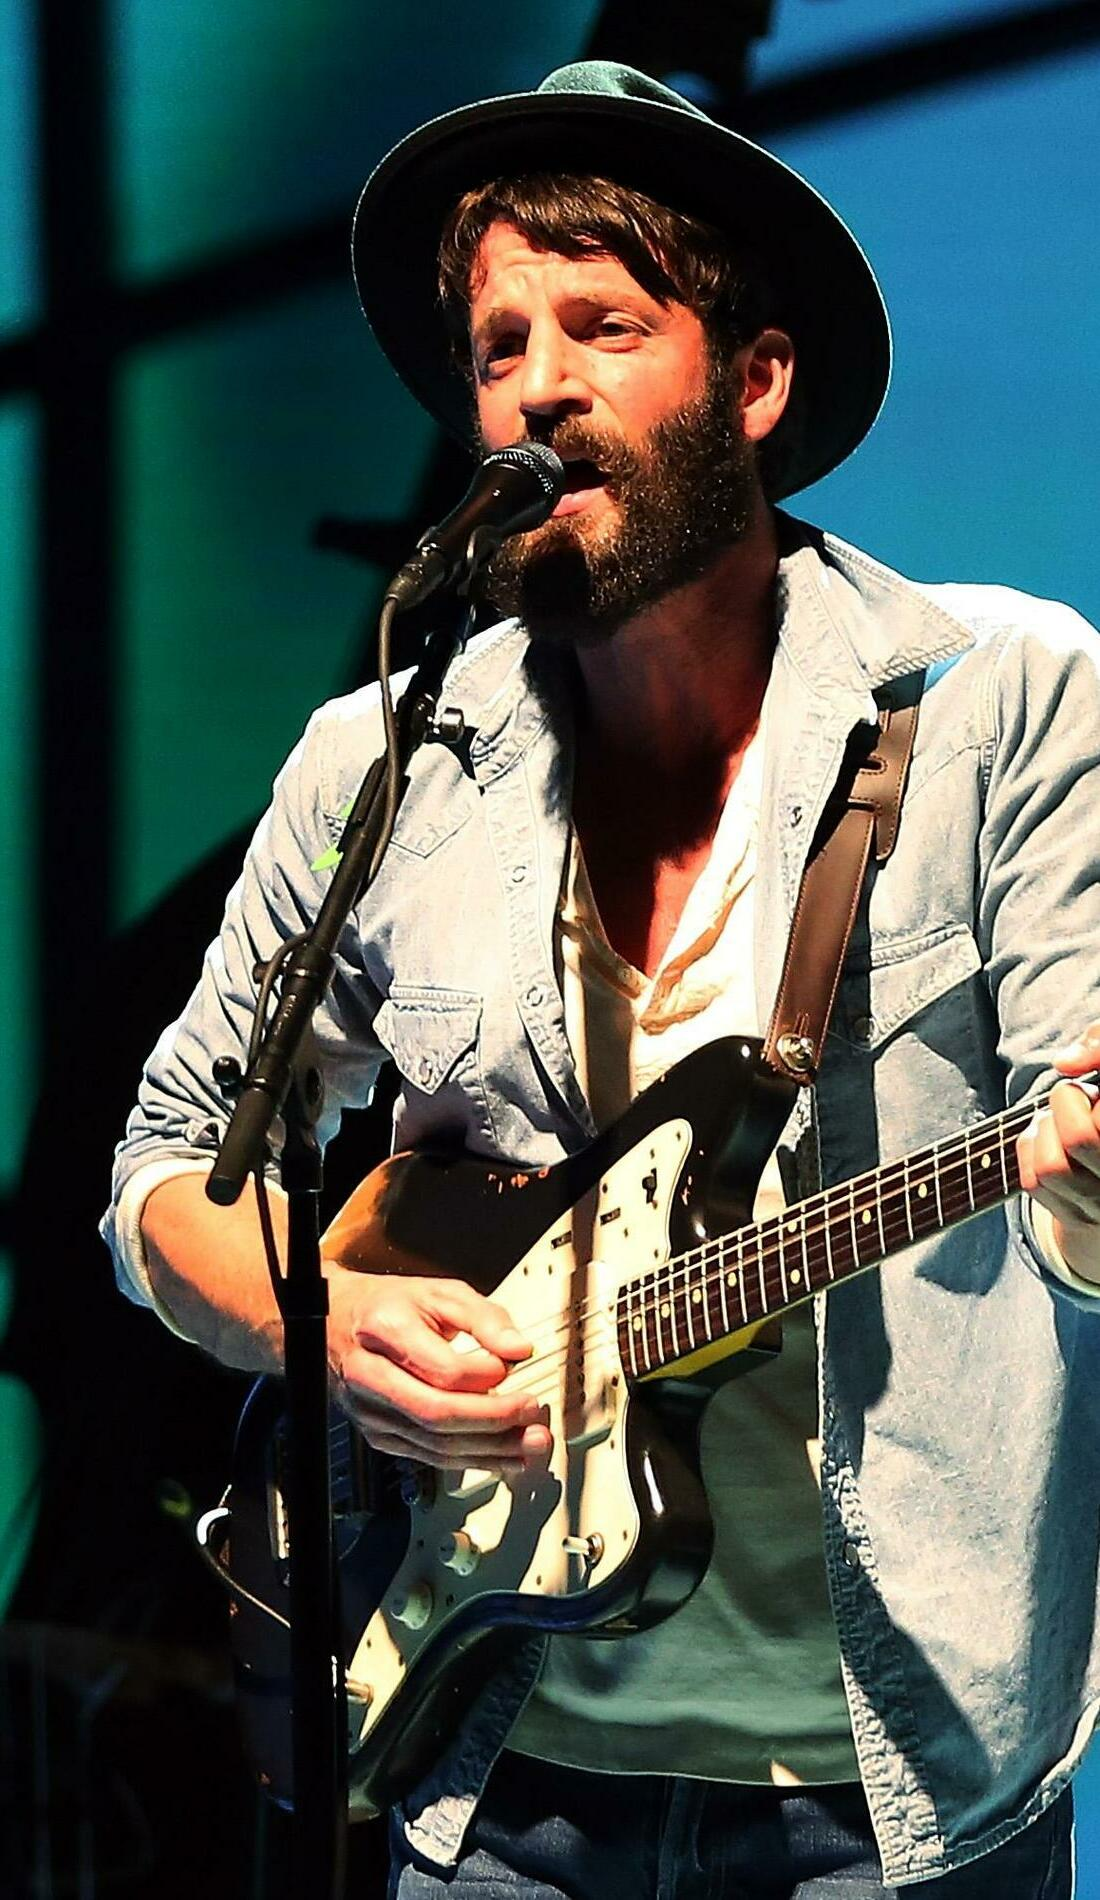 A Ray LaMontagne live event